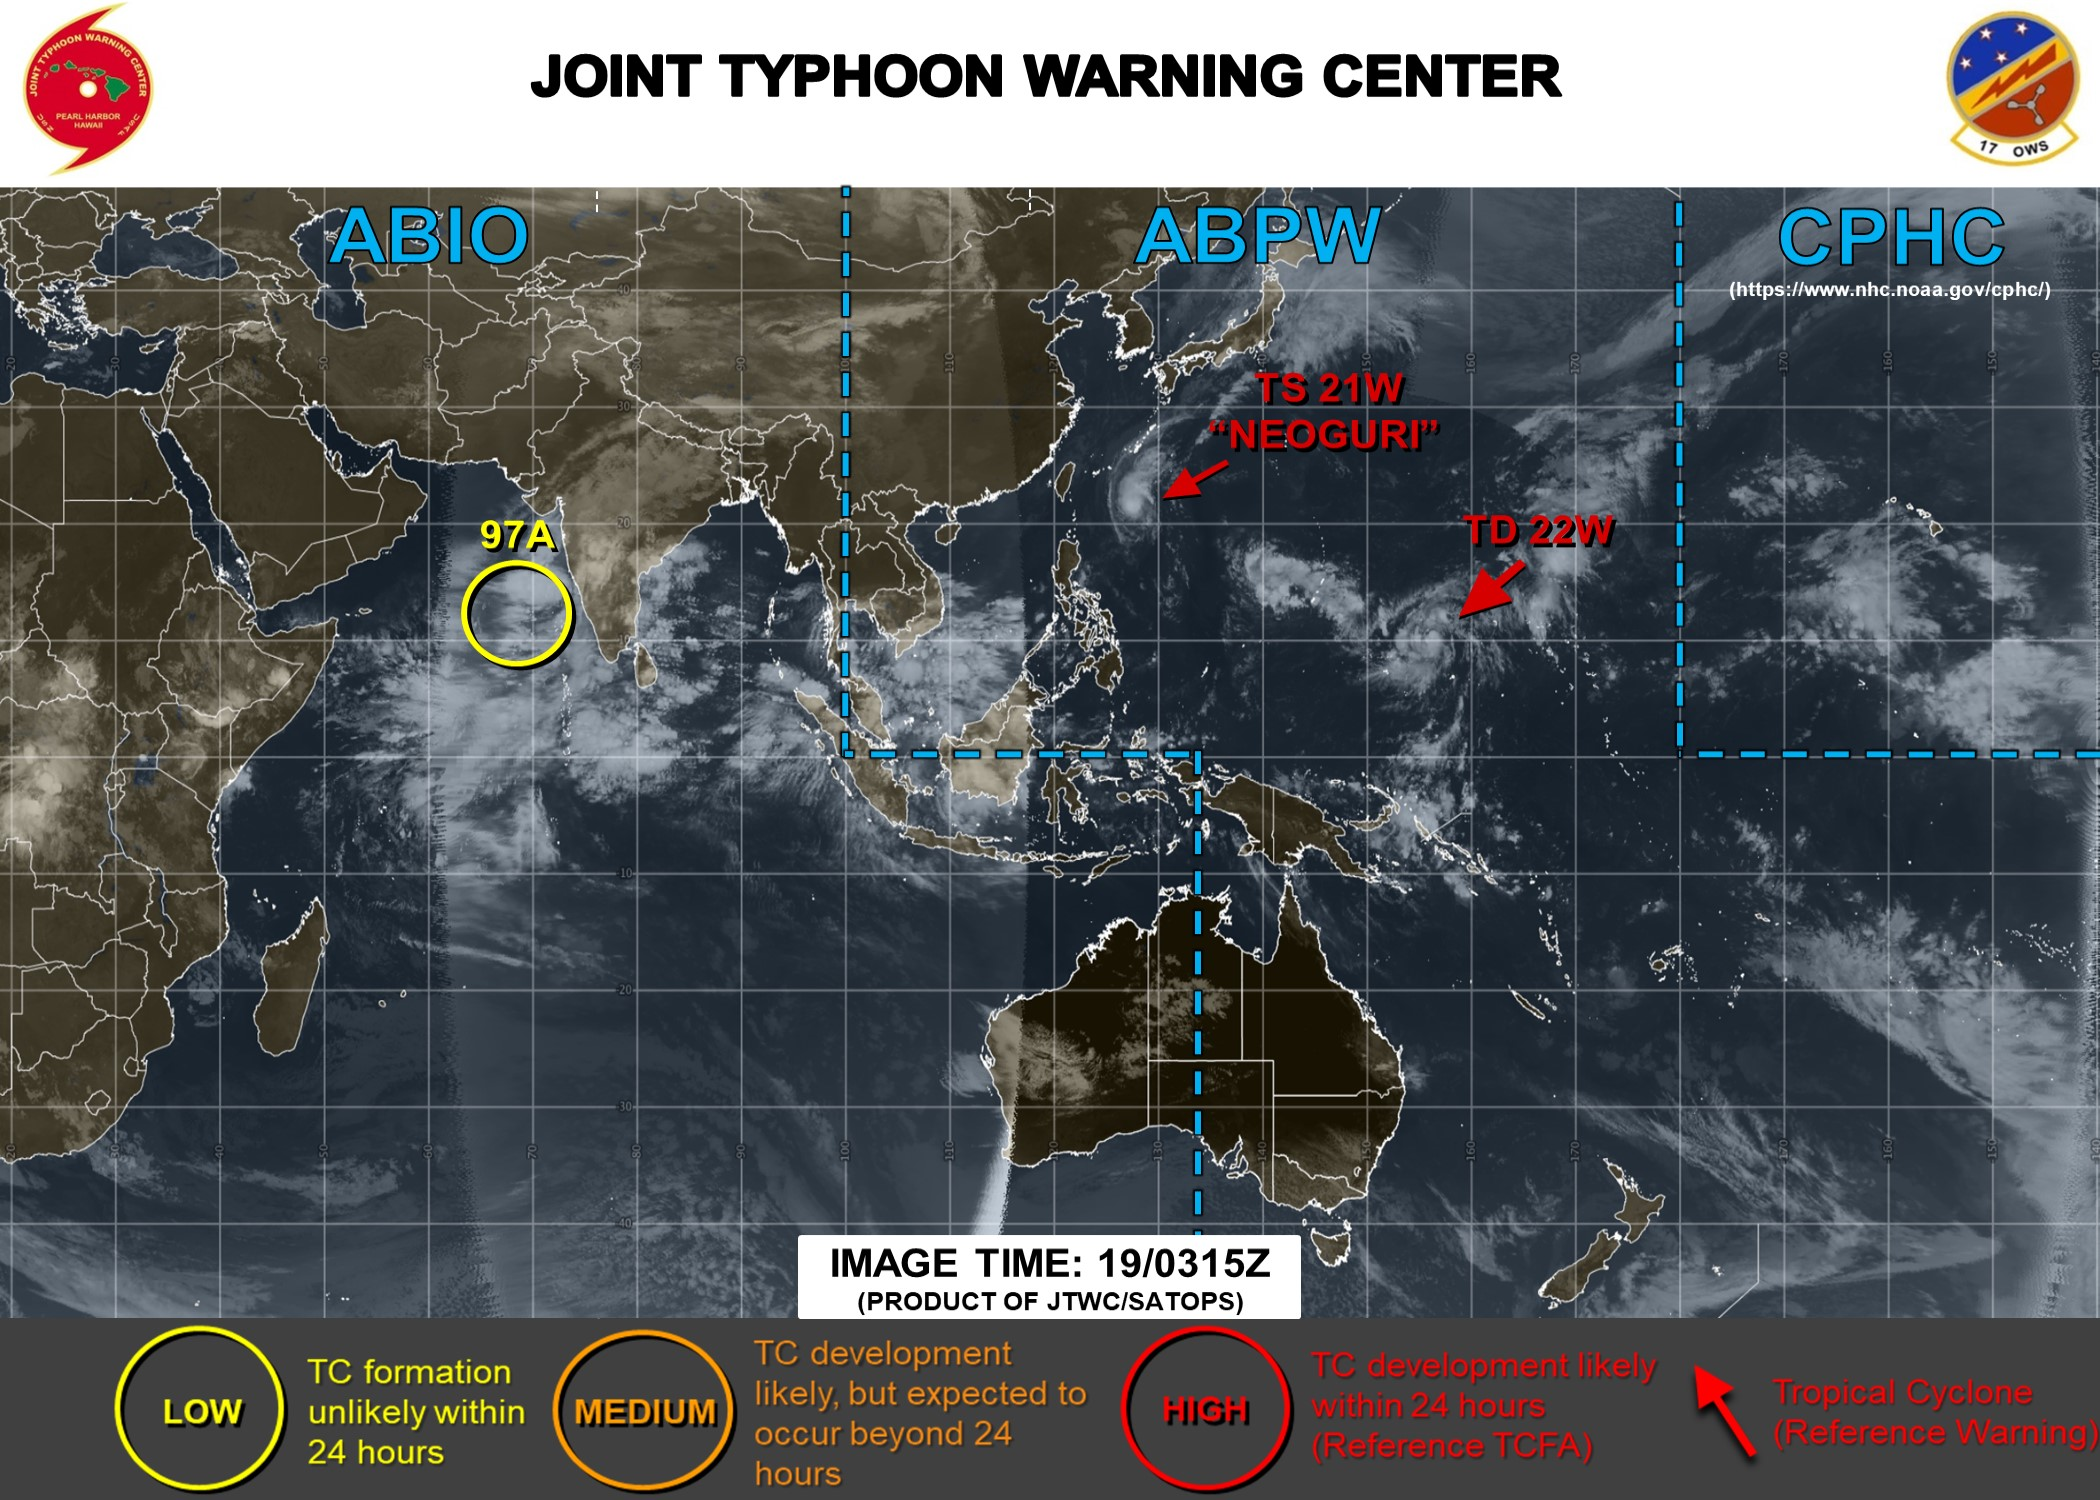 21W and 22W : cyclonic duo being monitored